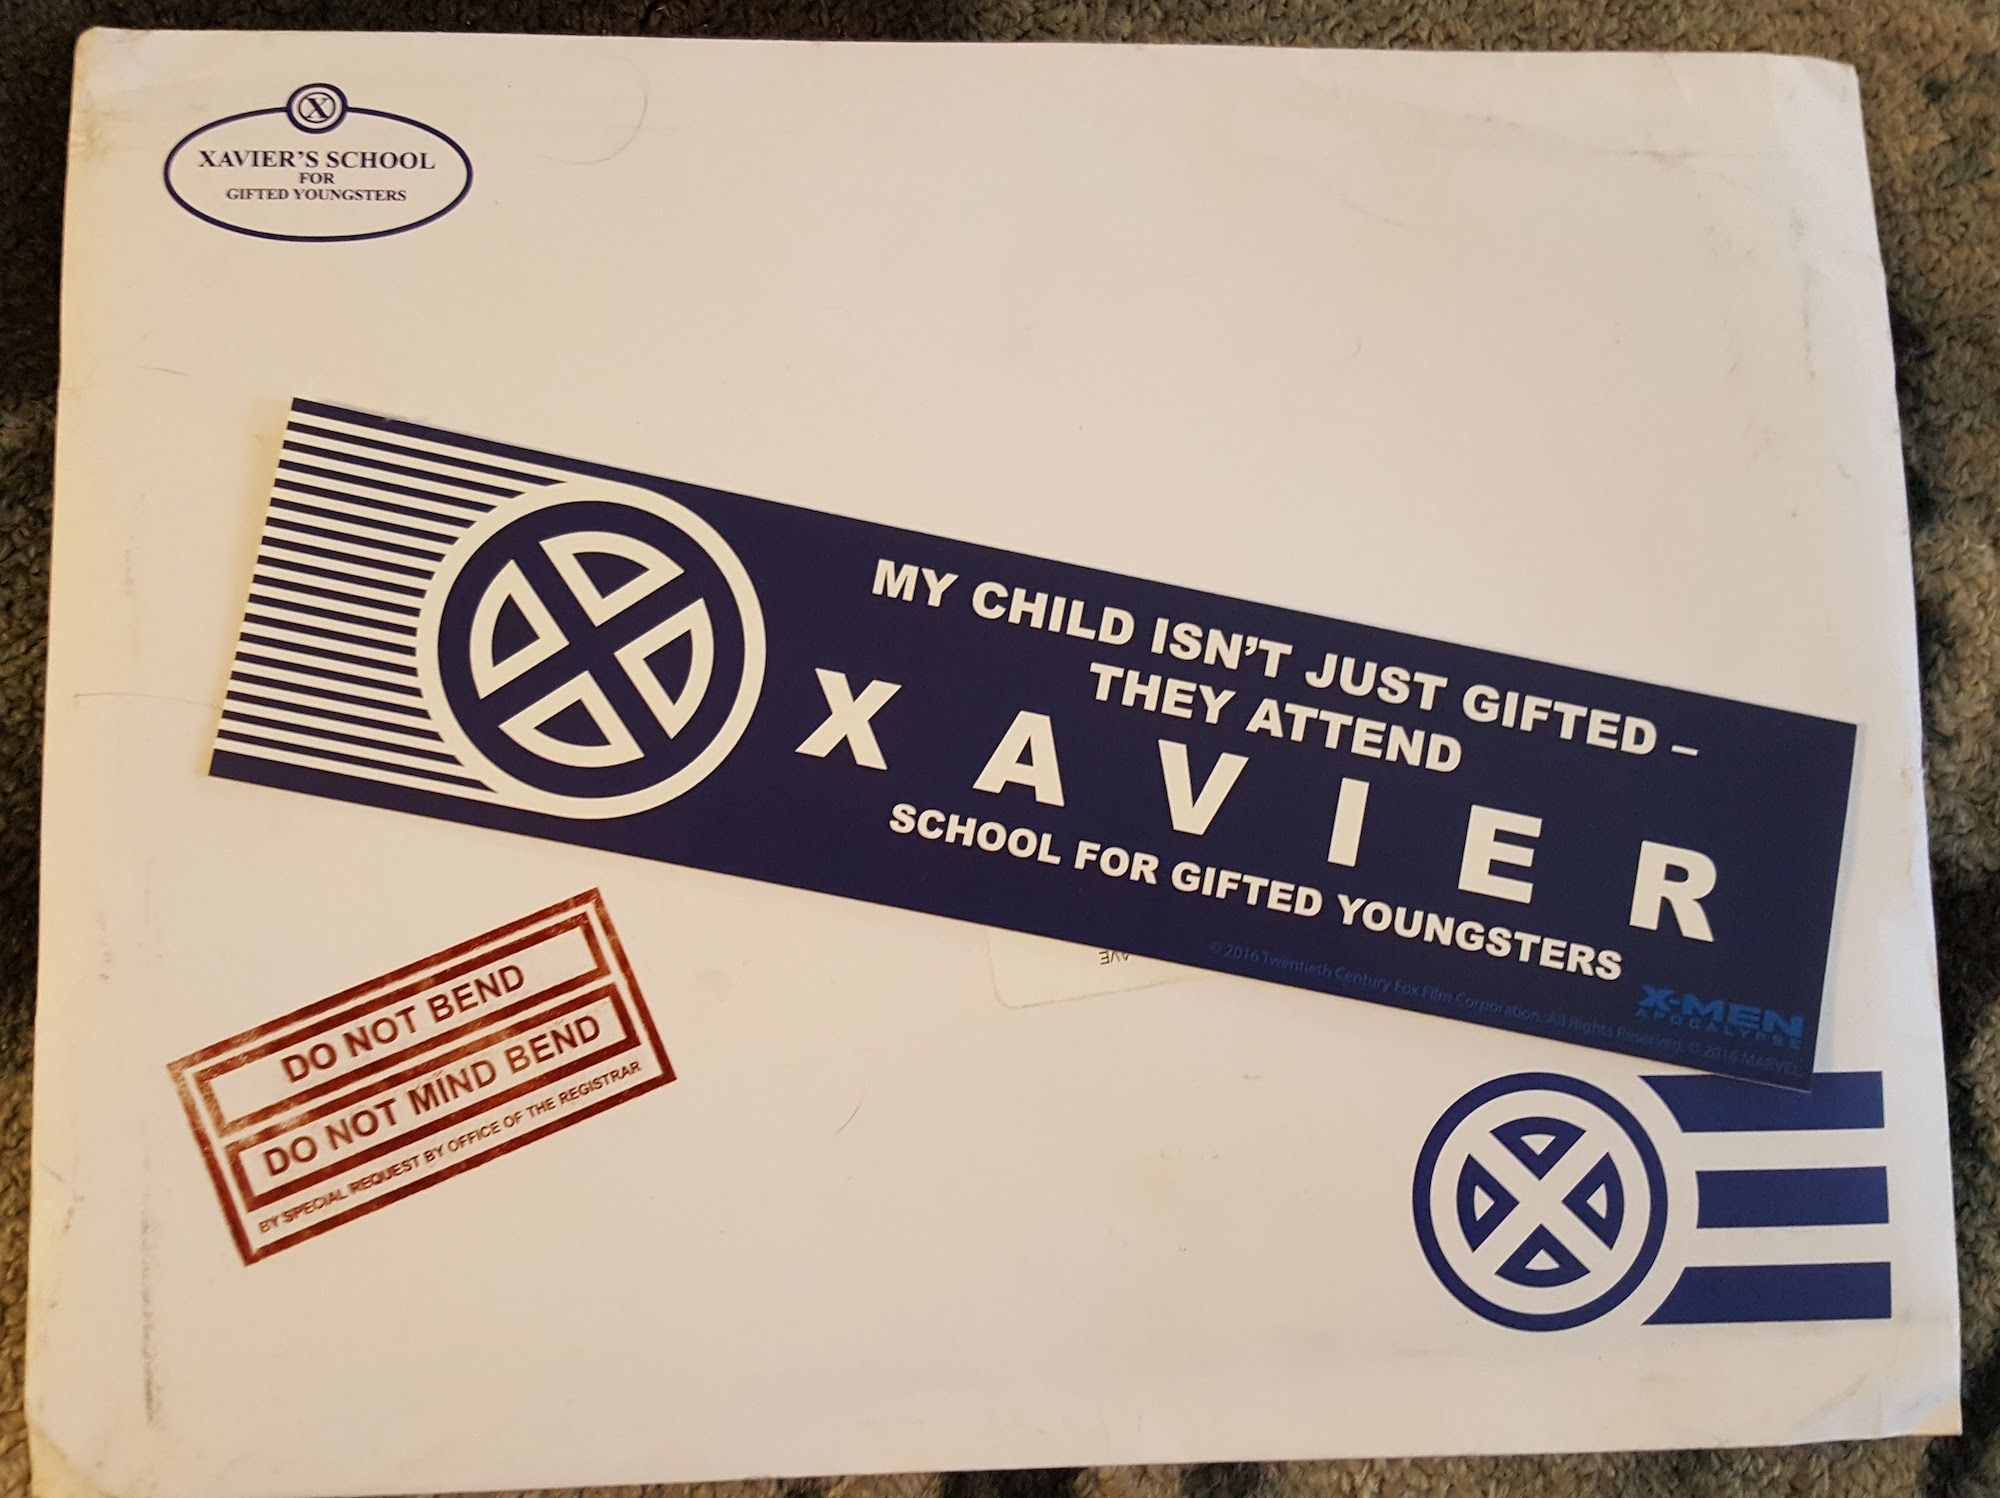 Xavier's School For Gifted Youngsters | Marvel x, Xmen